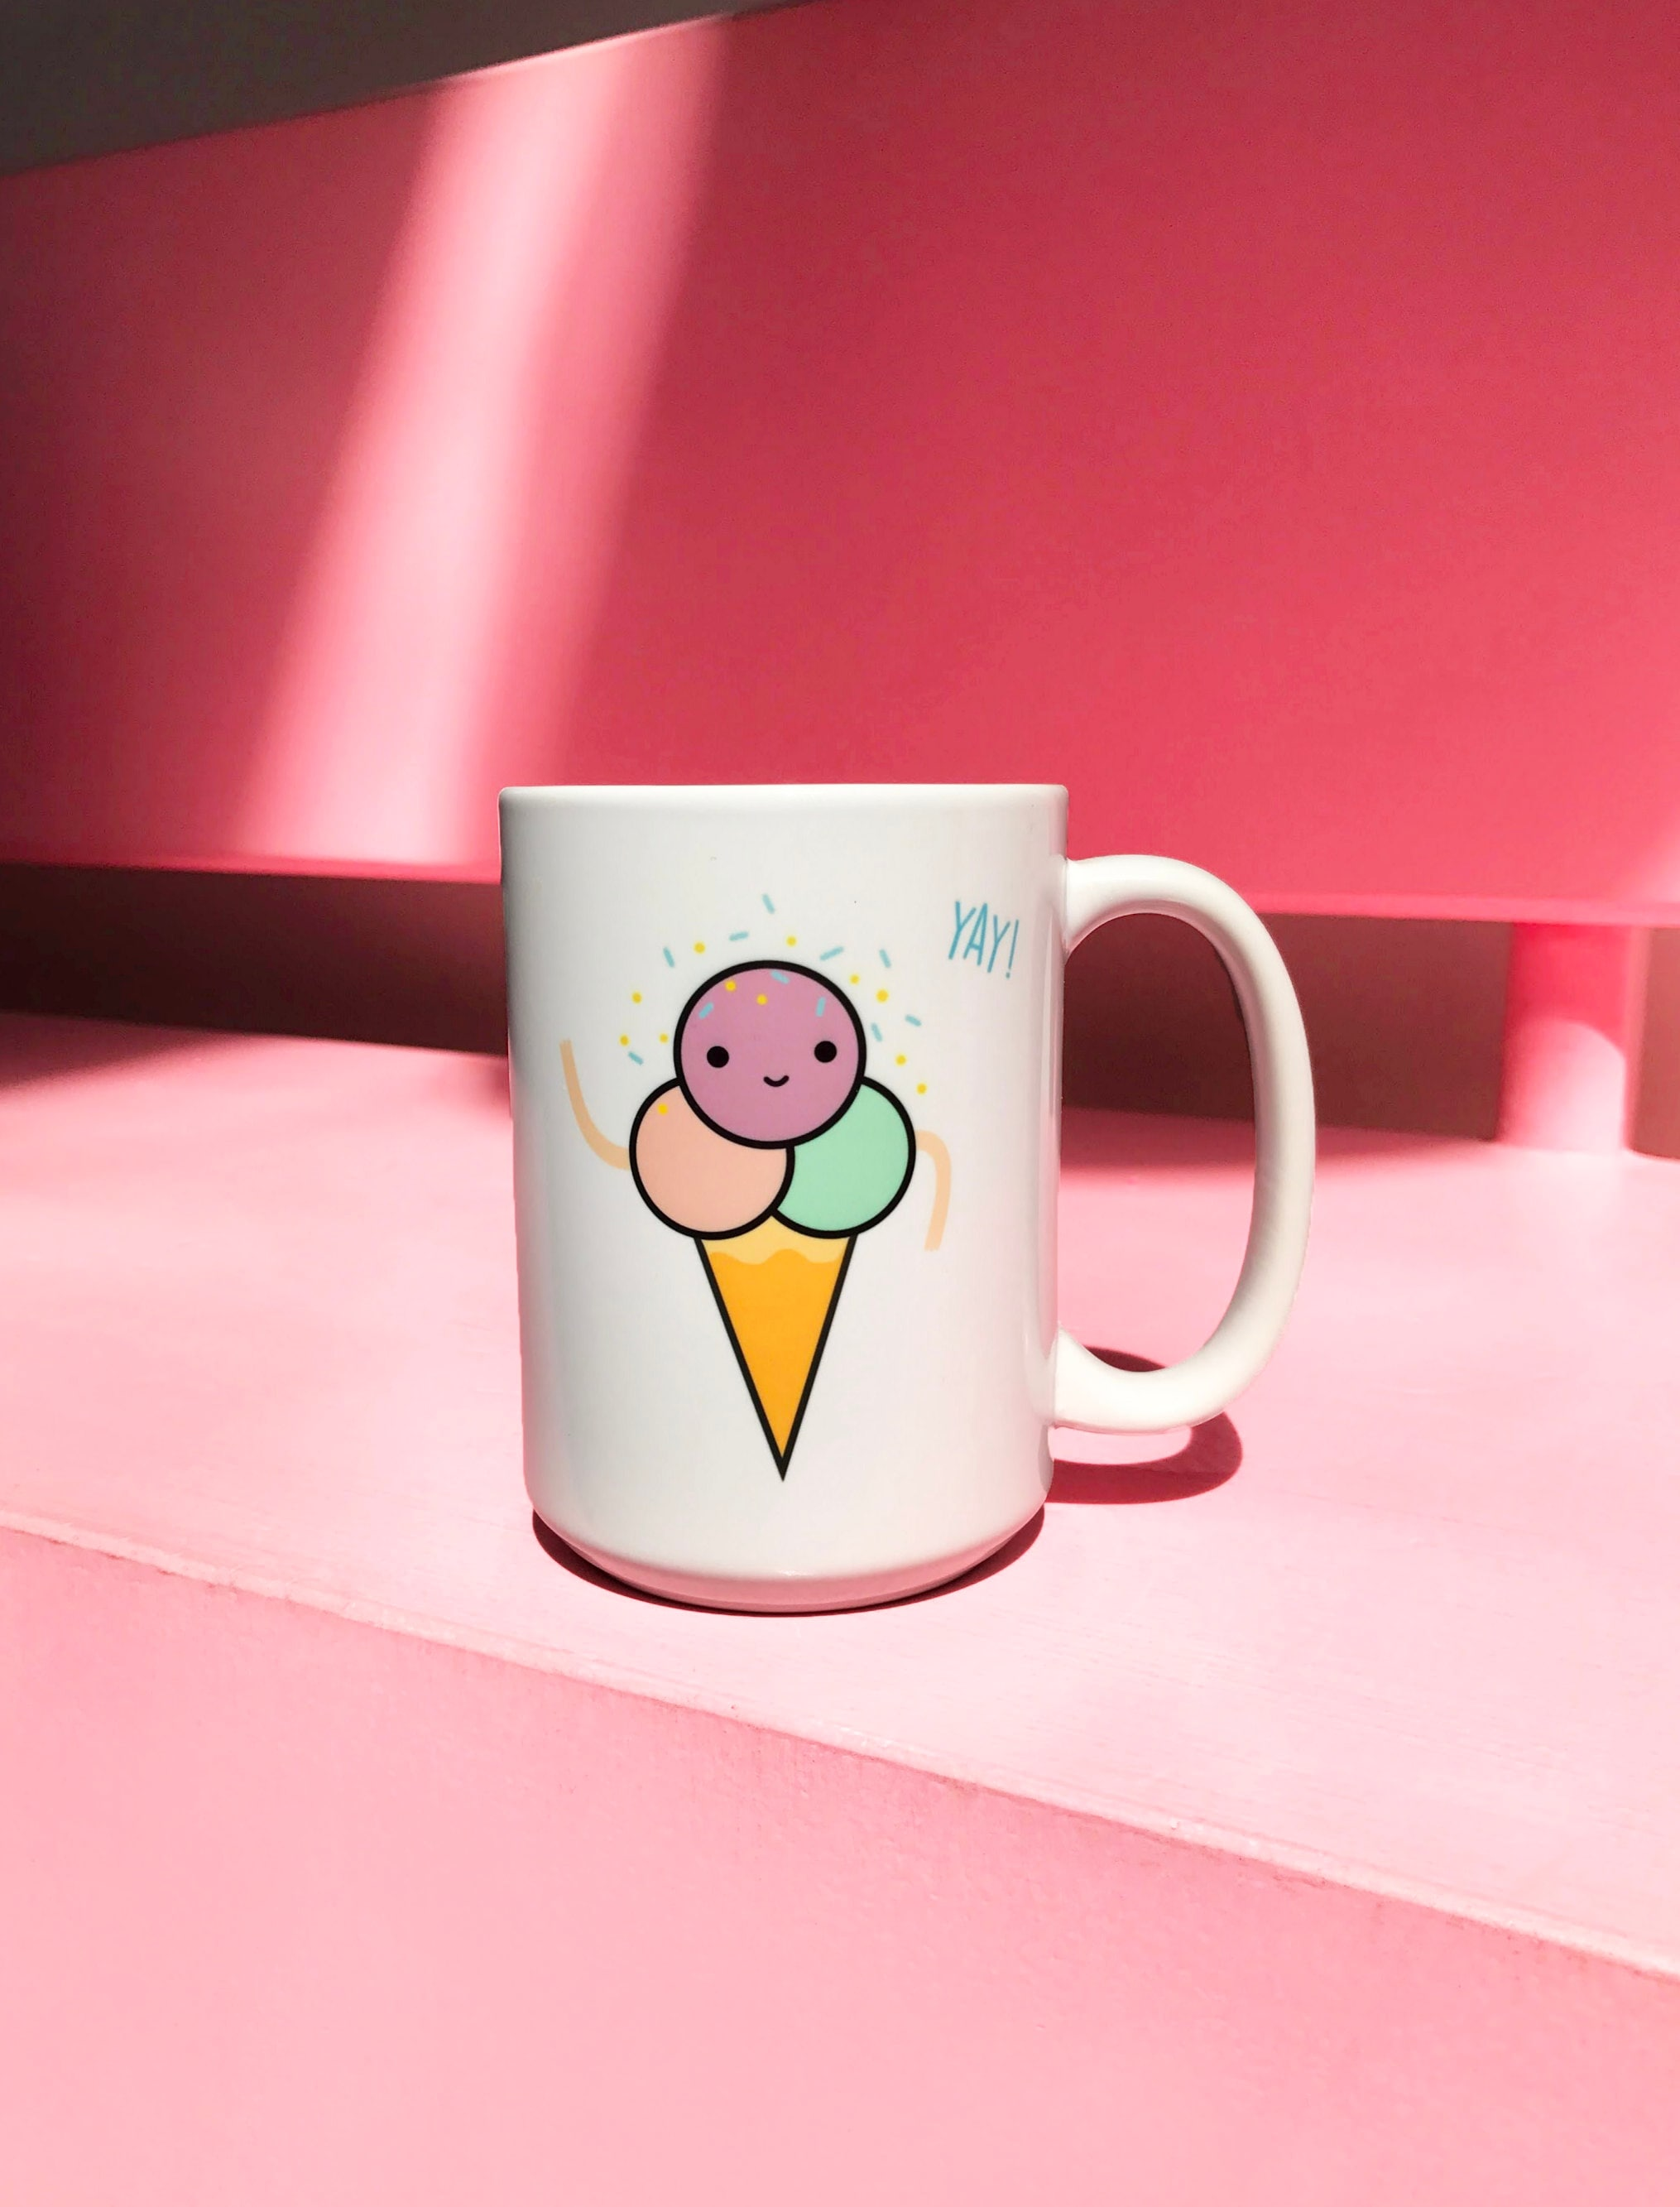 Our now favorite mug on a tour full of sprinkles and ice cream vibes